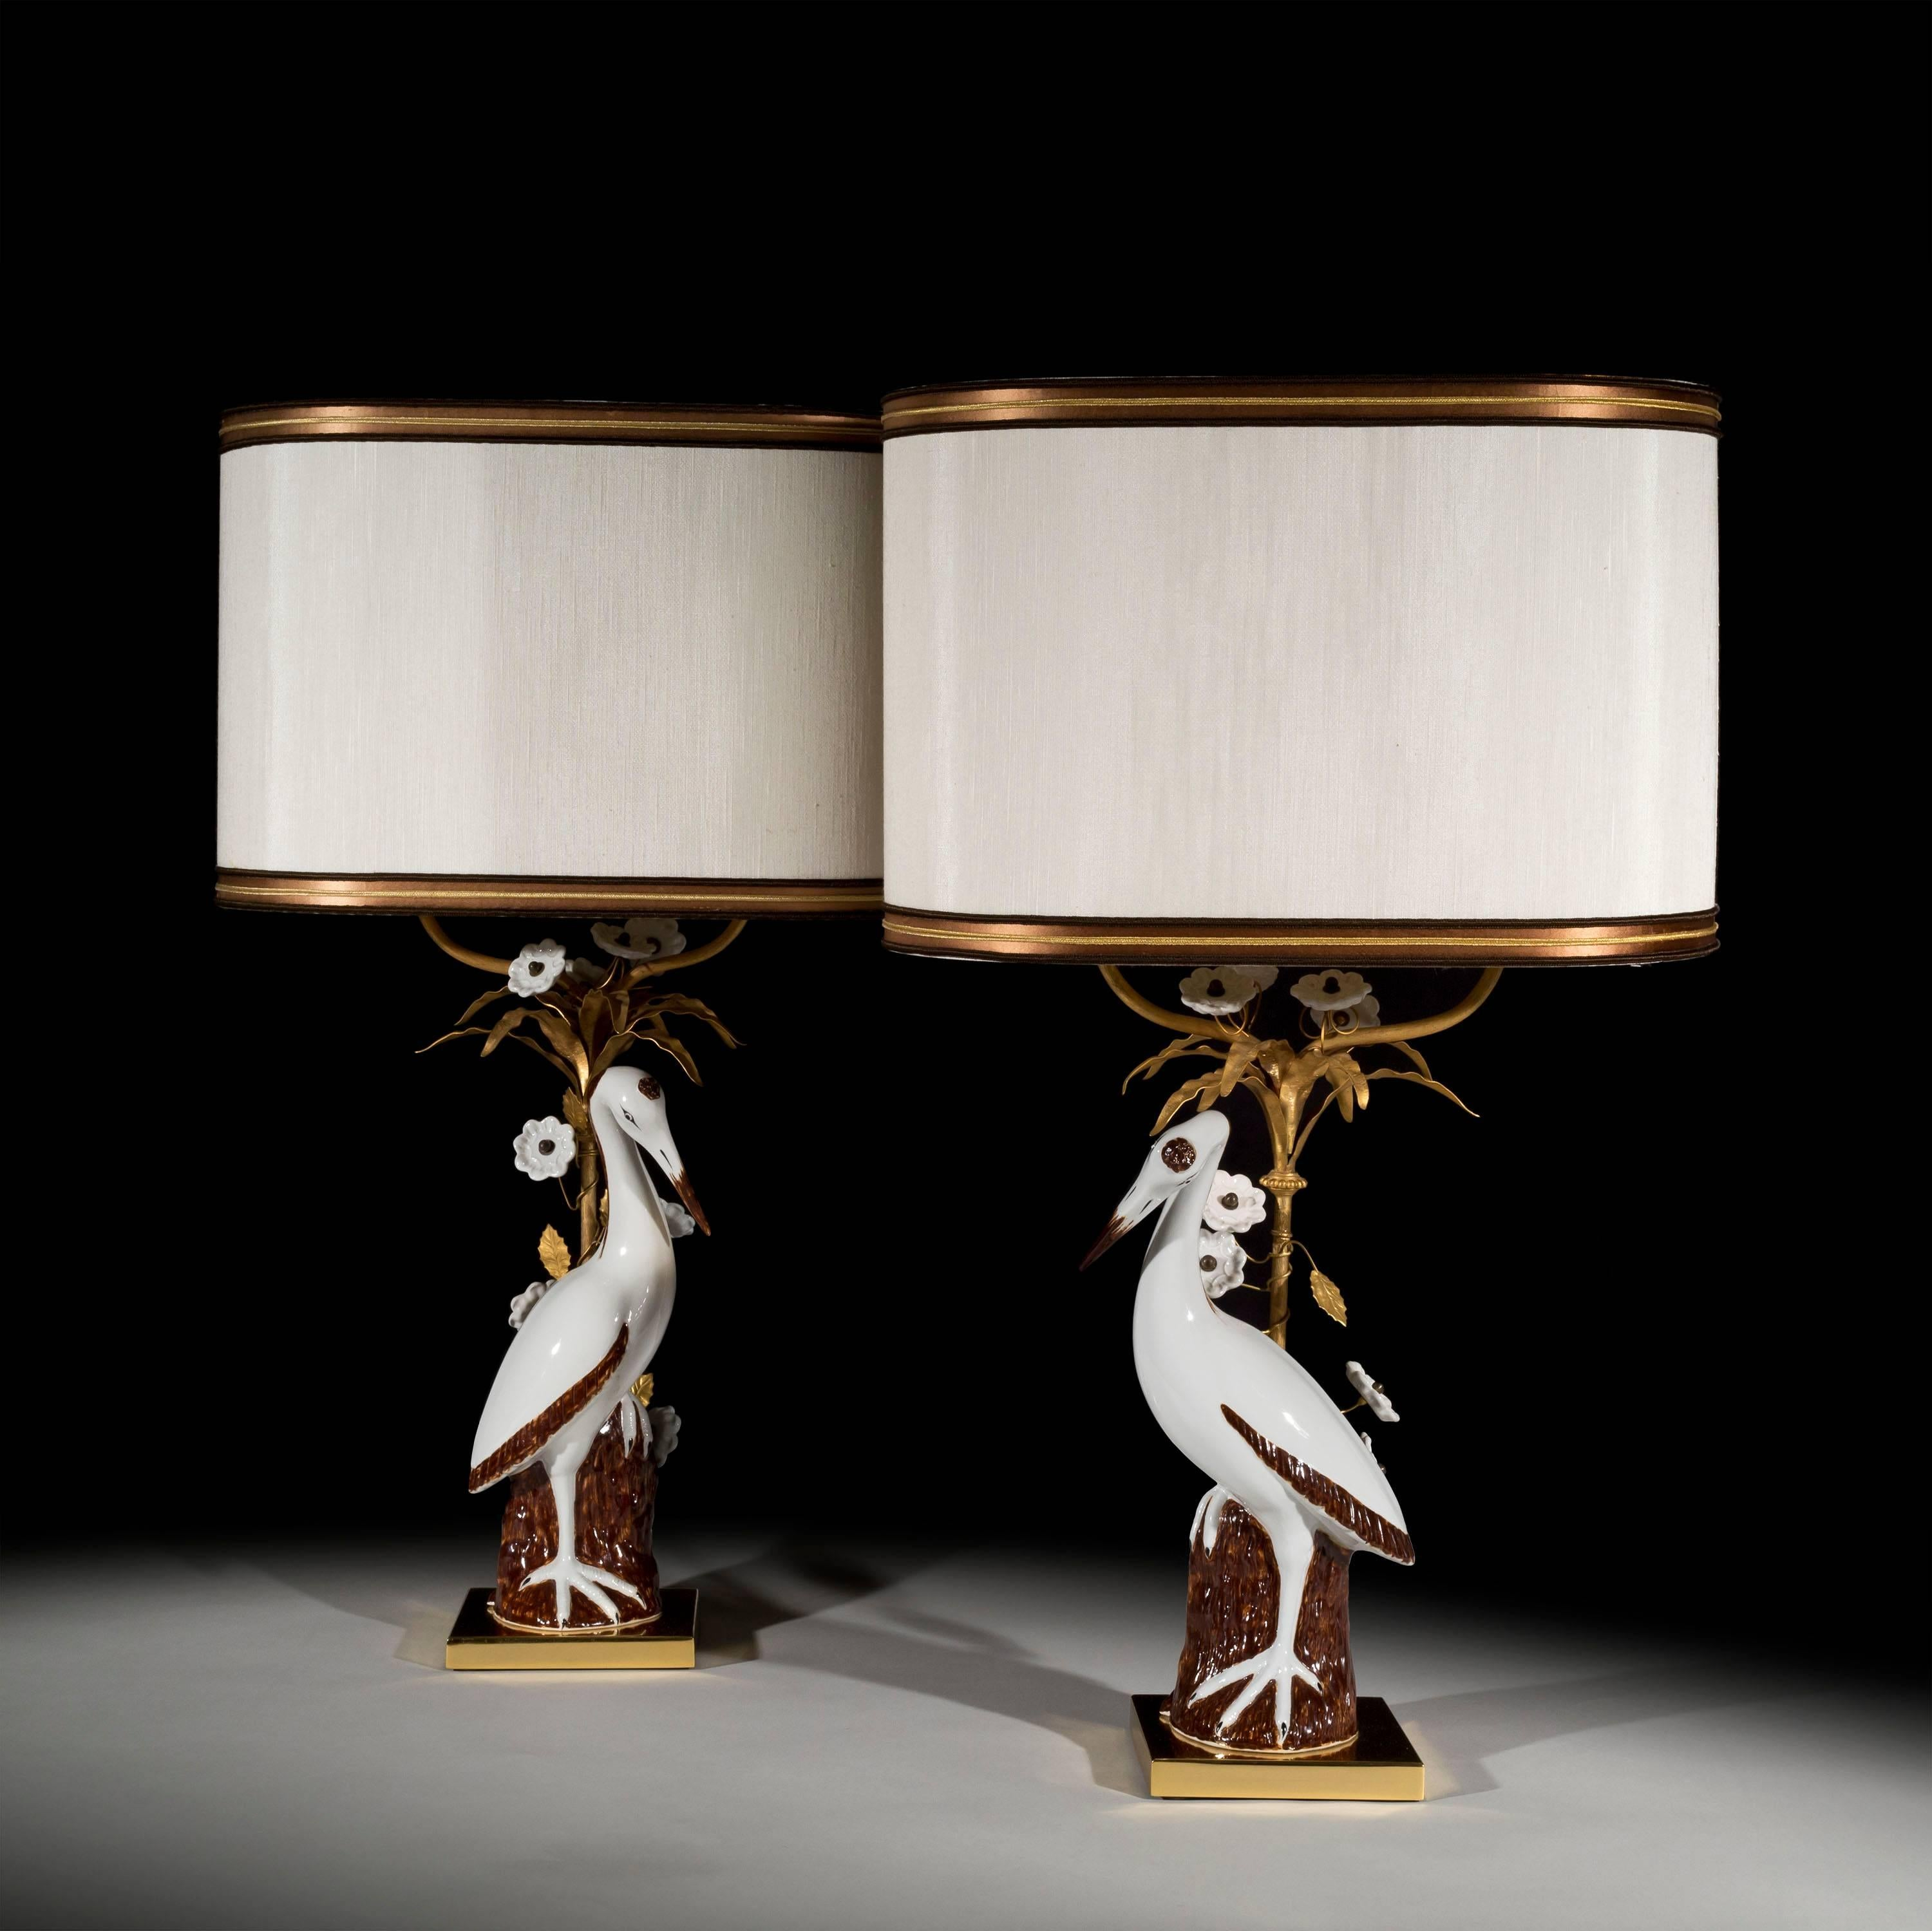 Italian Midcentury Pair Of Large Porcelain Crane Table Lamps By Mangani For  Sale At 1stdibs